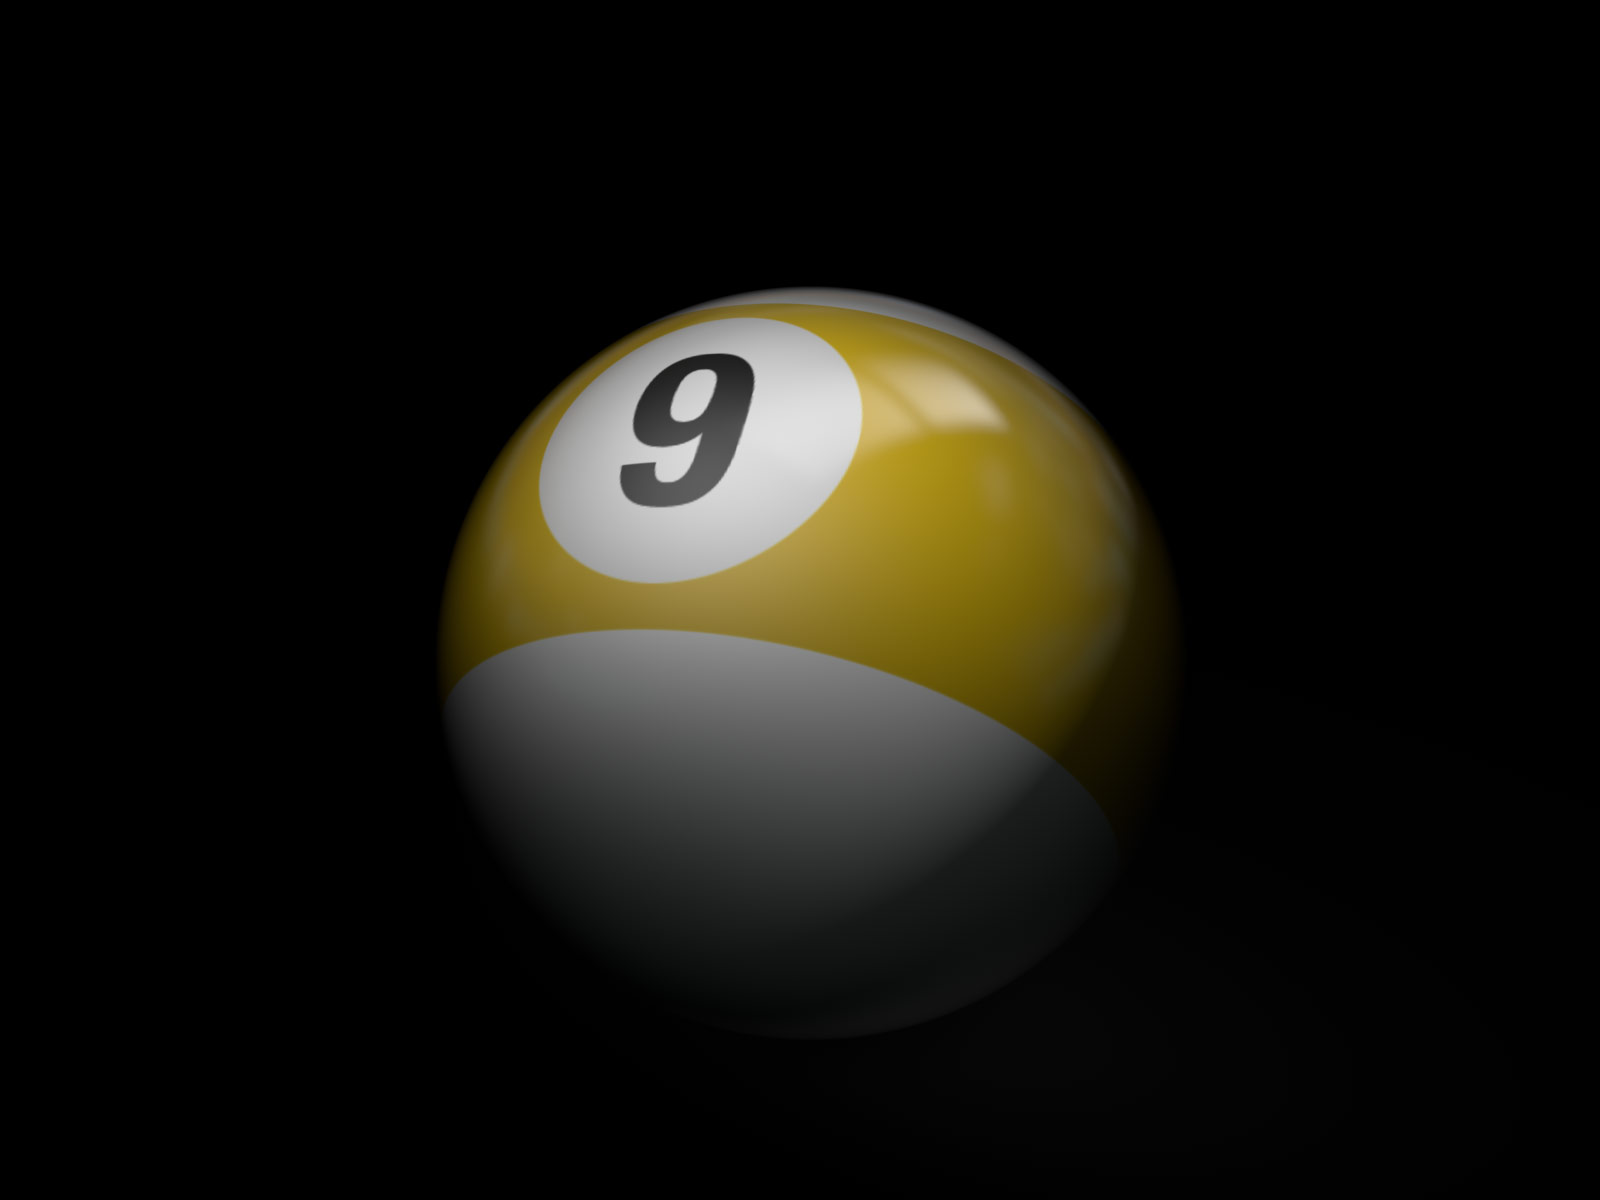 9 Ball Pool Desktop Wallpaper   Chalk Is 1600x1200